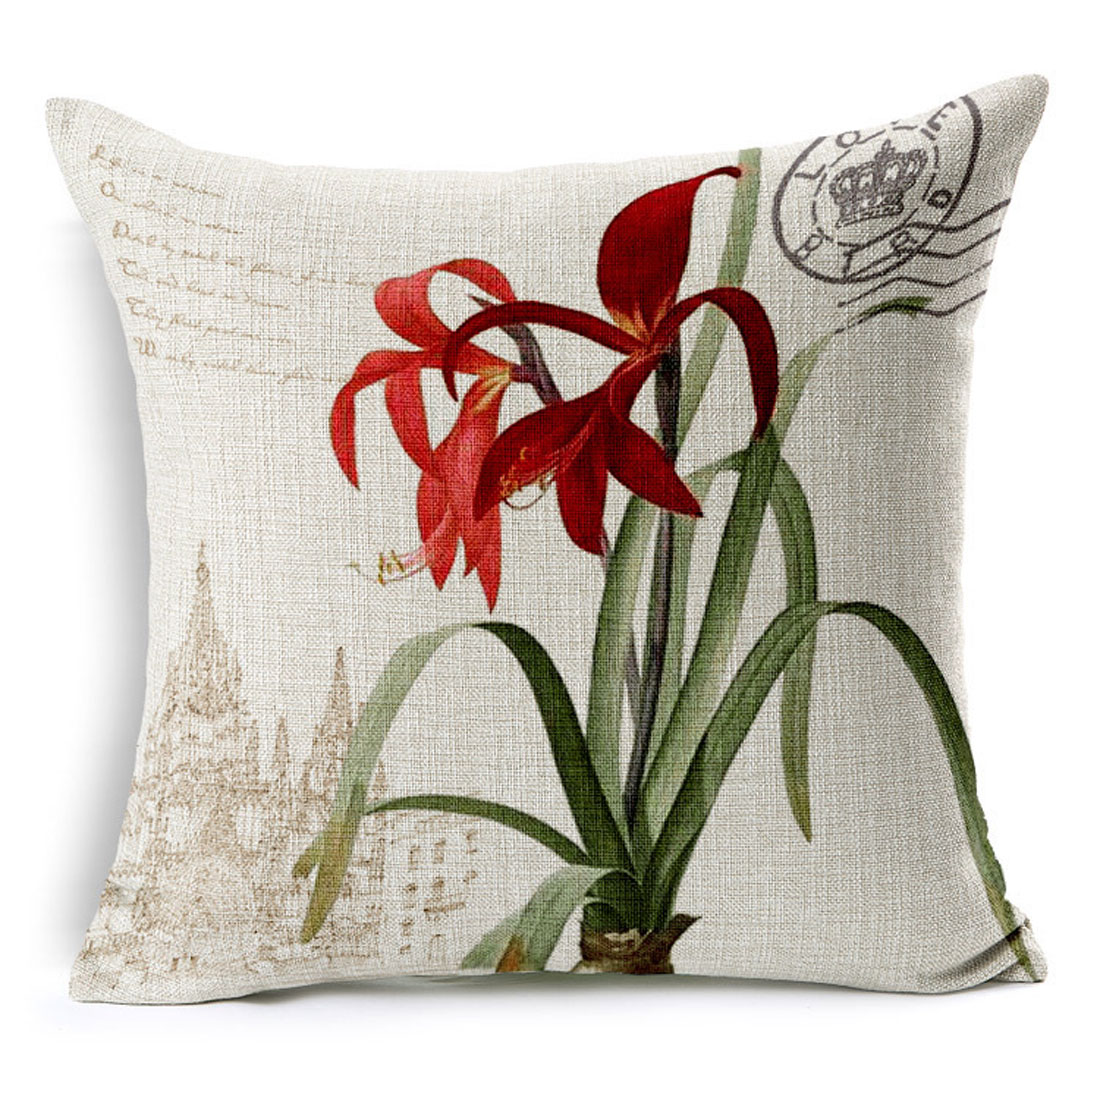 Household Sofa Couch Cotton Linen Hosta Pattern Waist Throw Cushion Cover Pillow Case